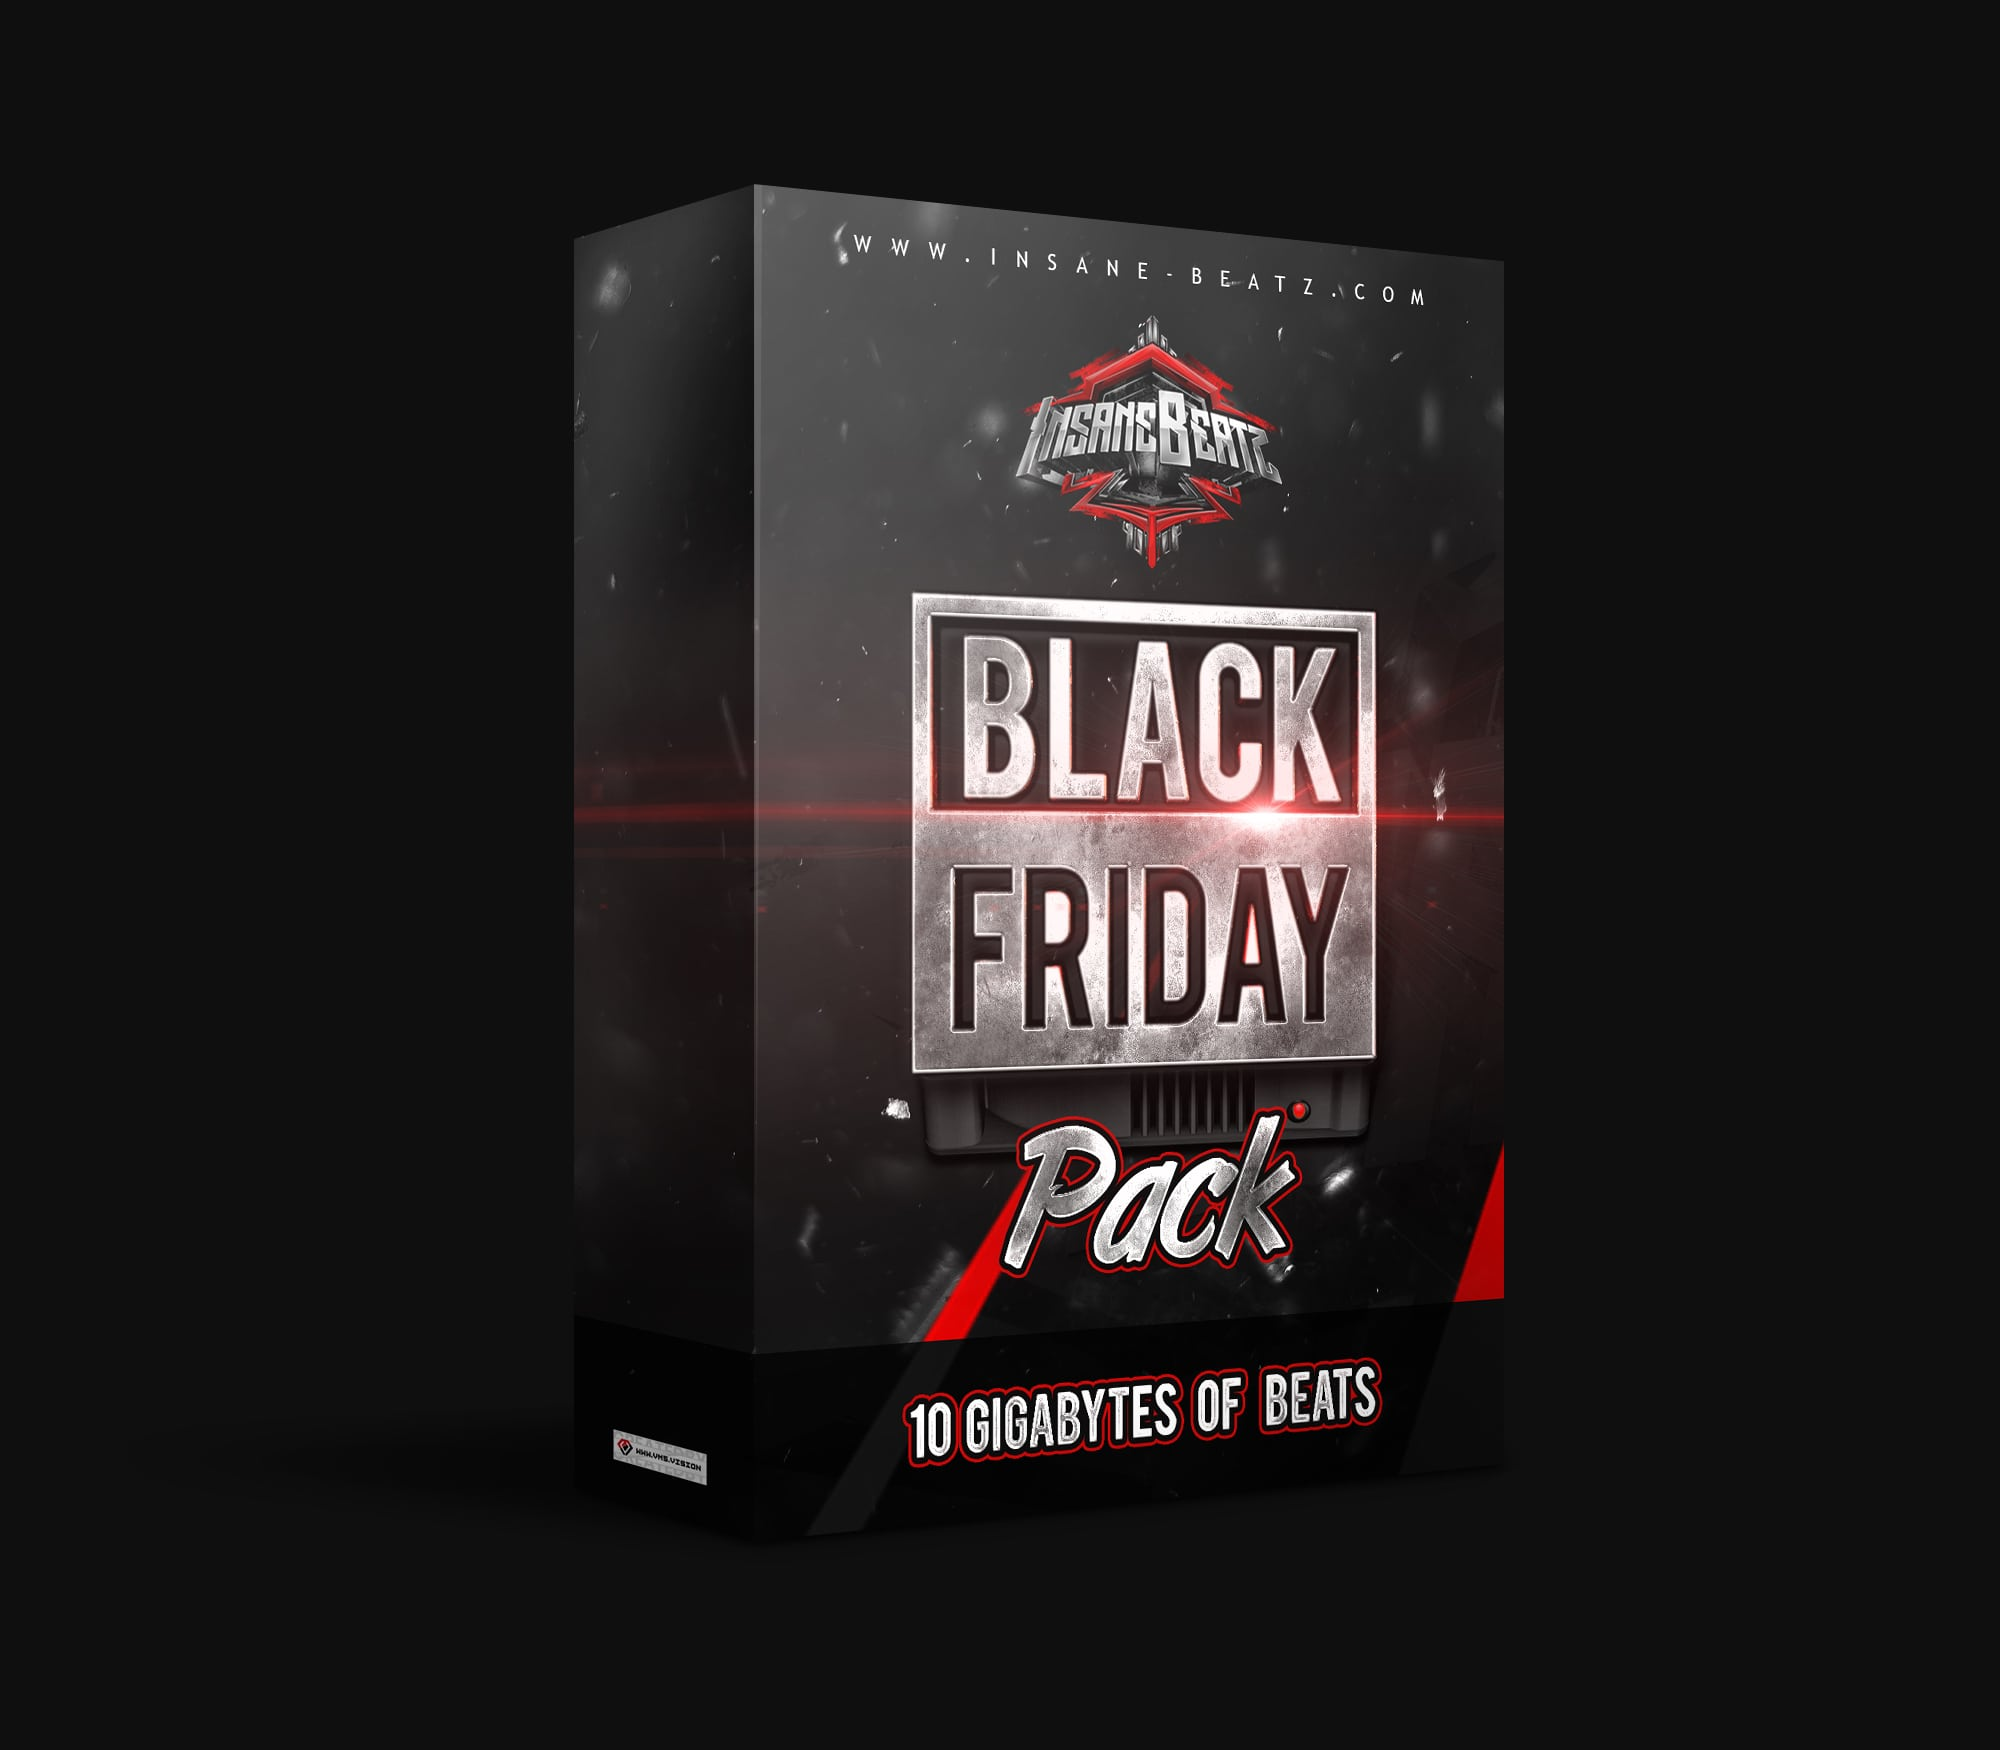 Insane Beatz – Black Friday Pack